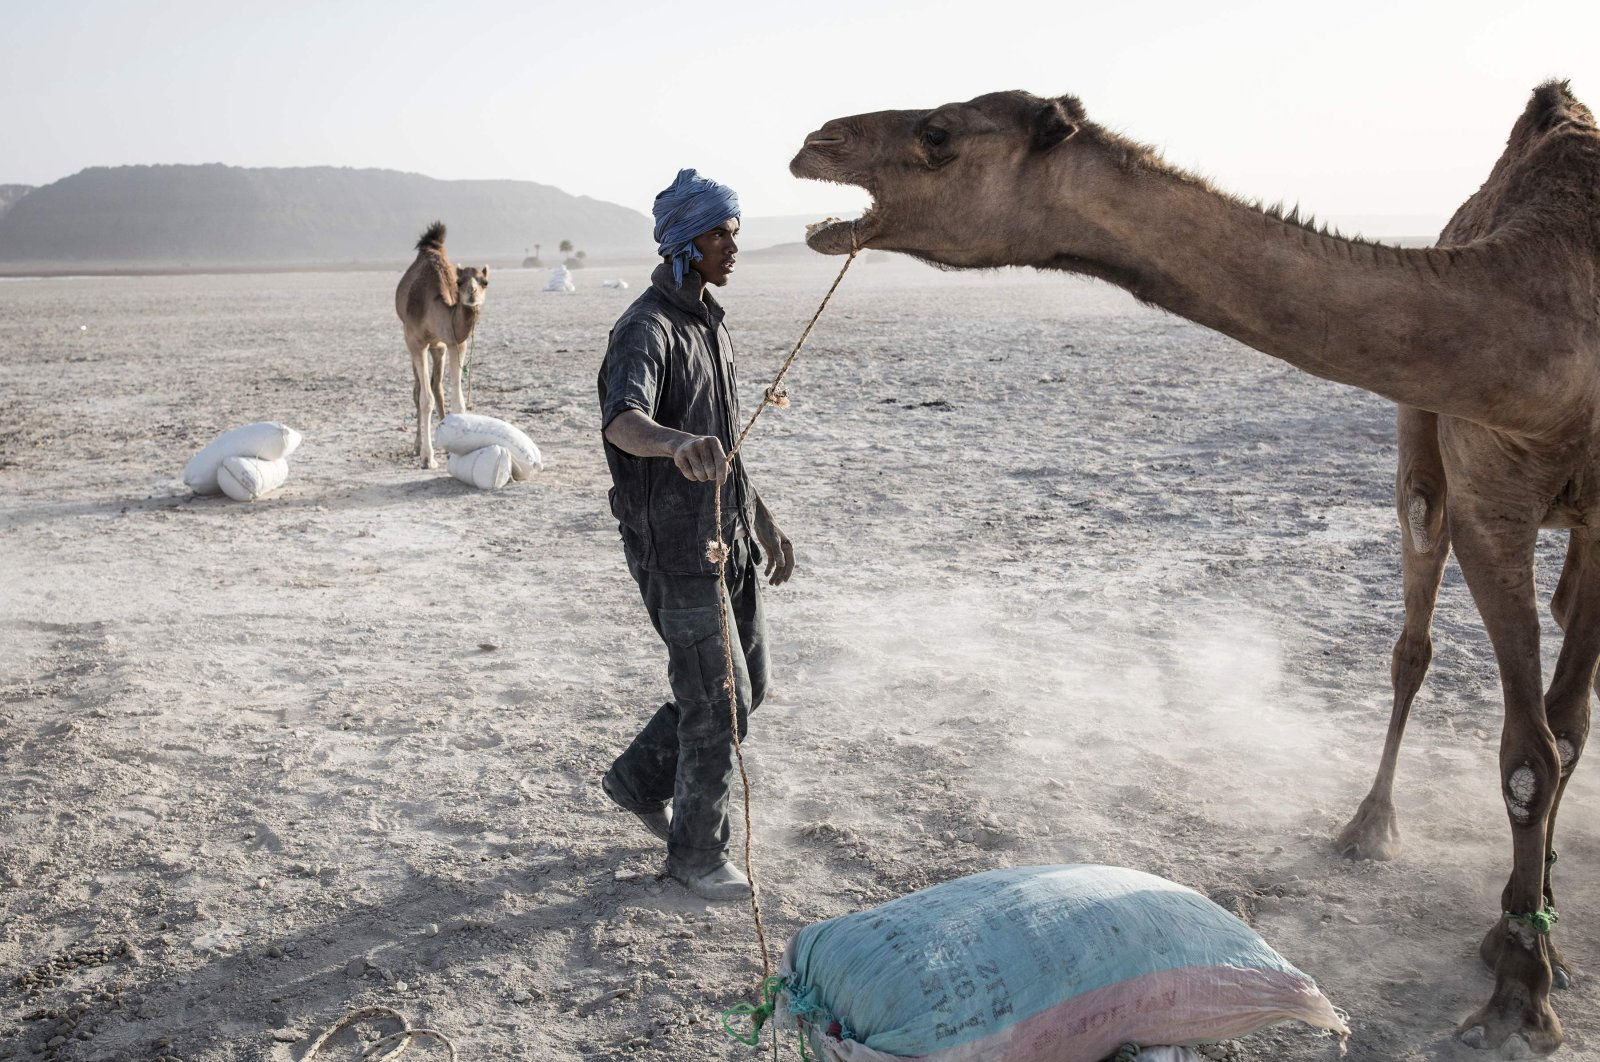 Men load camels with large bags of salt, mined from a salt field on the outskirts of the Neolithic trading town of Tichitt, Mauritania, Jan. 28, 2020. (AFP Photo)